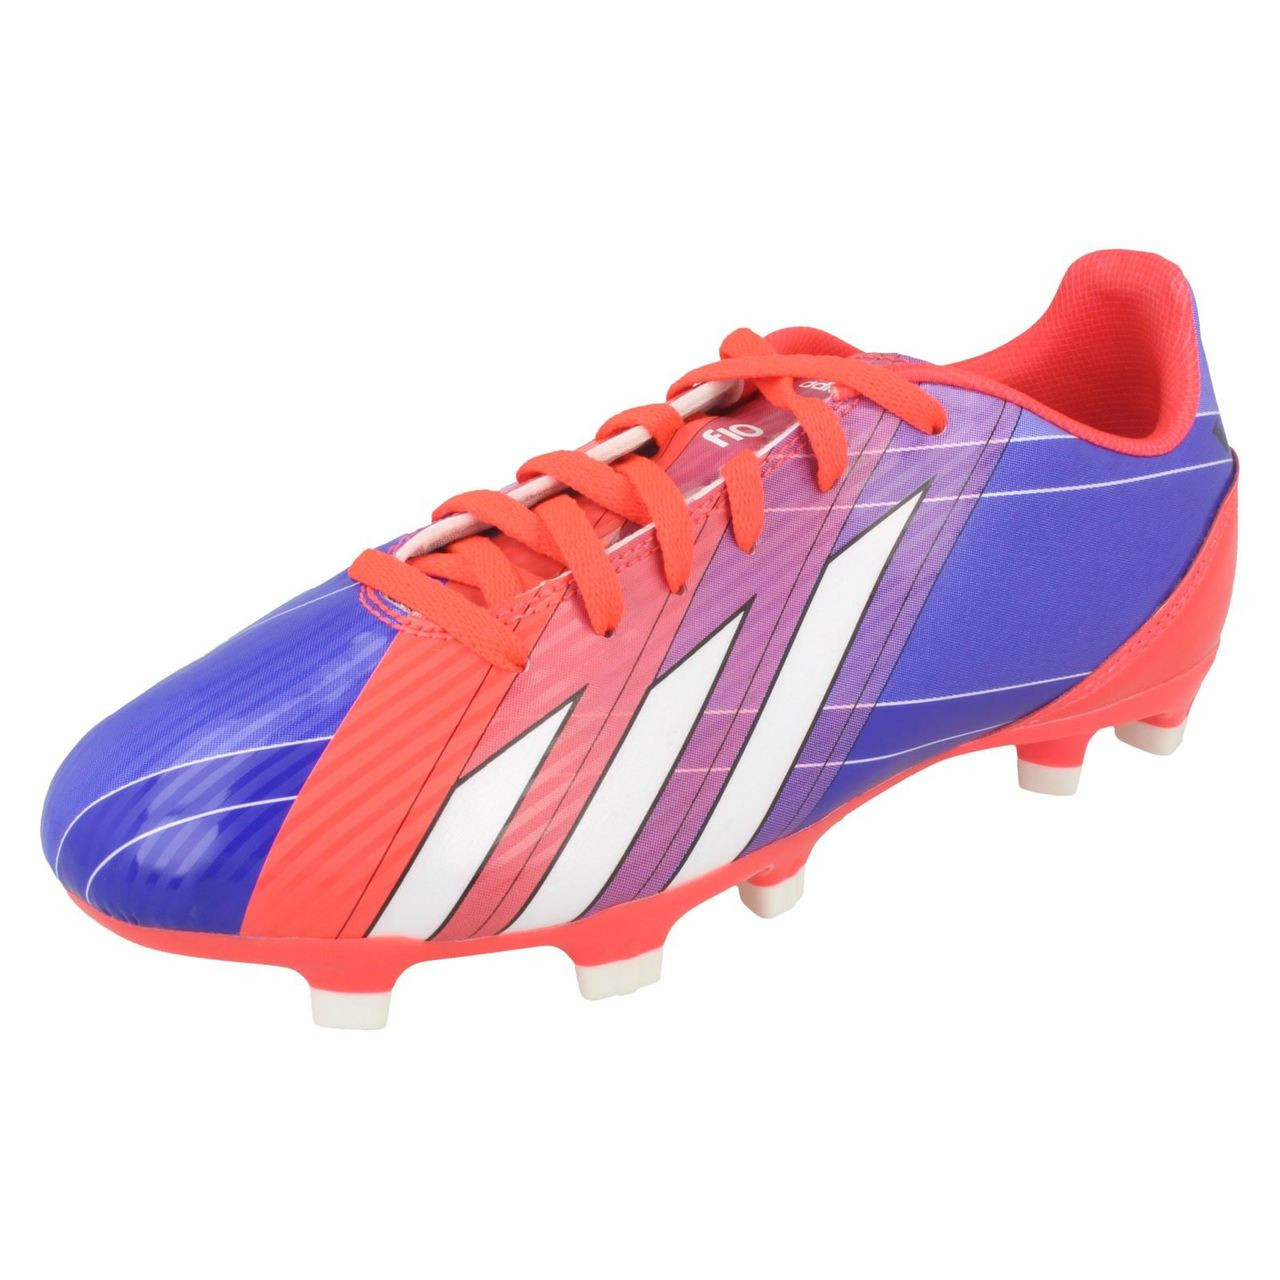 Boys Adidas Lionel Messi Football Boots